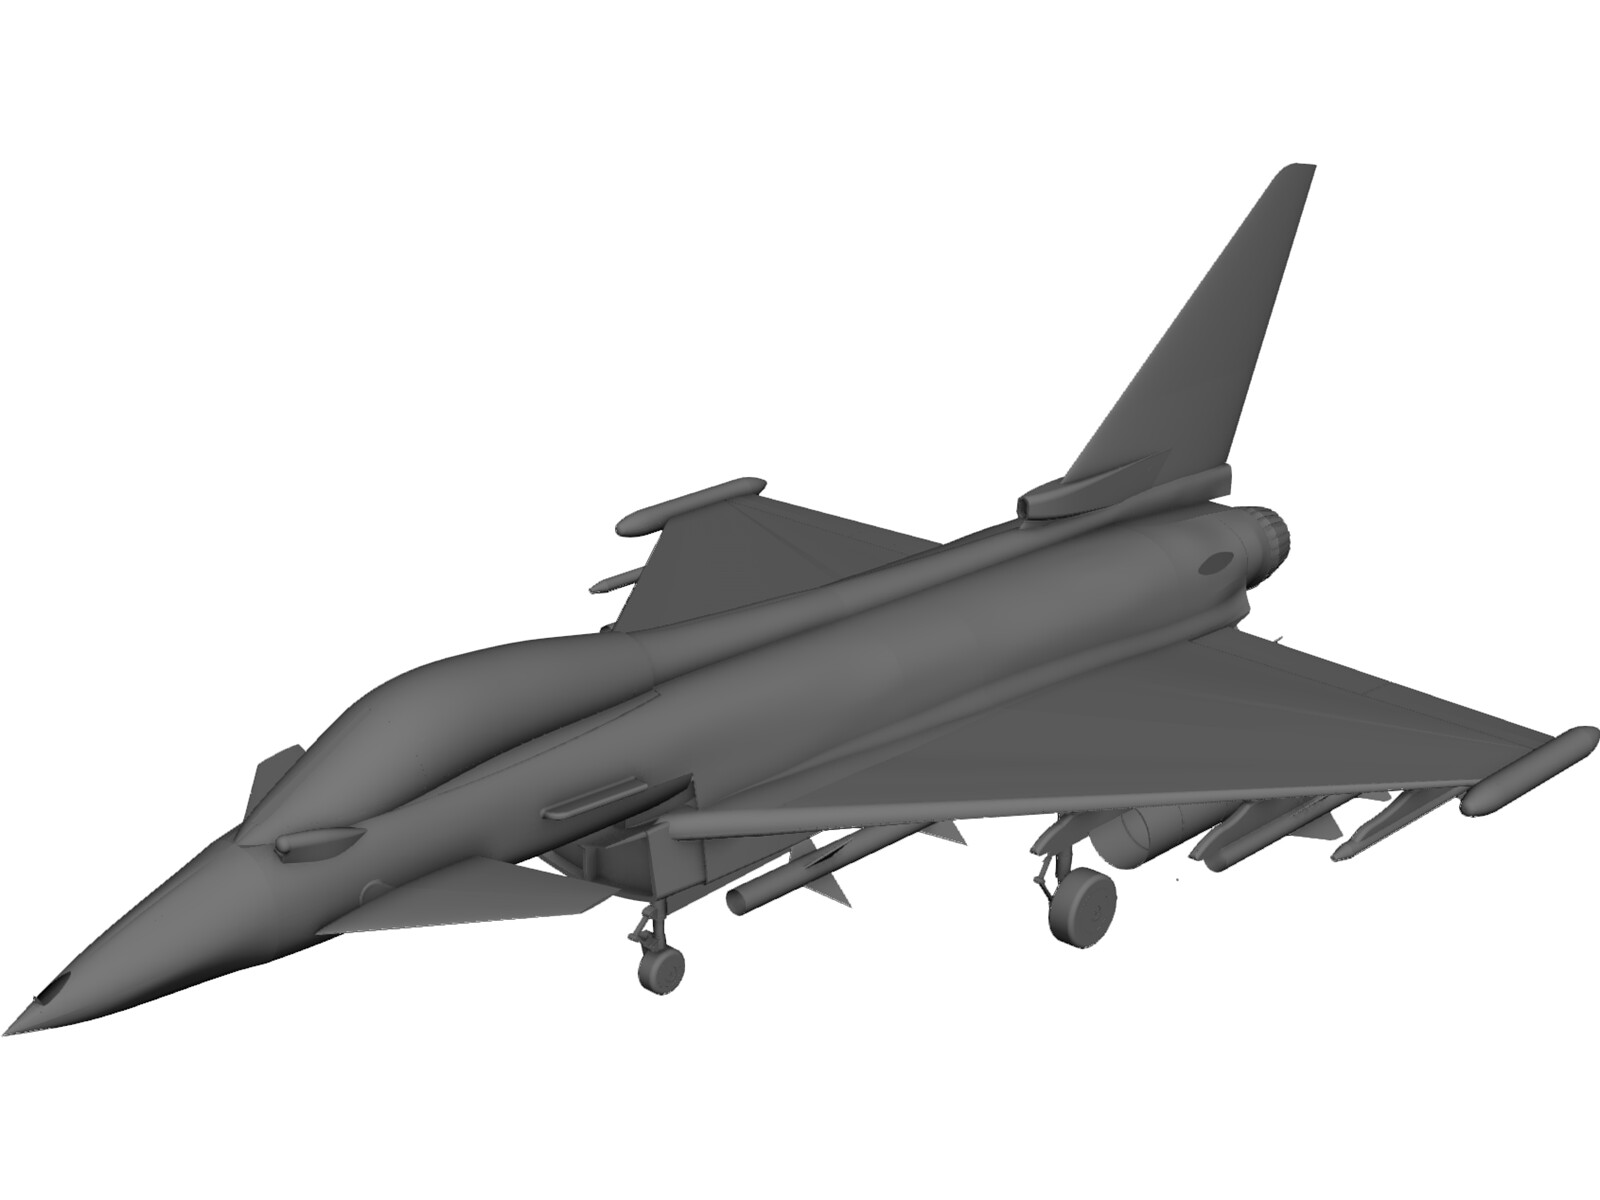 eurofighter 2000 3d cad model 3d cad browser. Black Bedroom Furniture Sets. Home Design Ideas